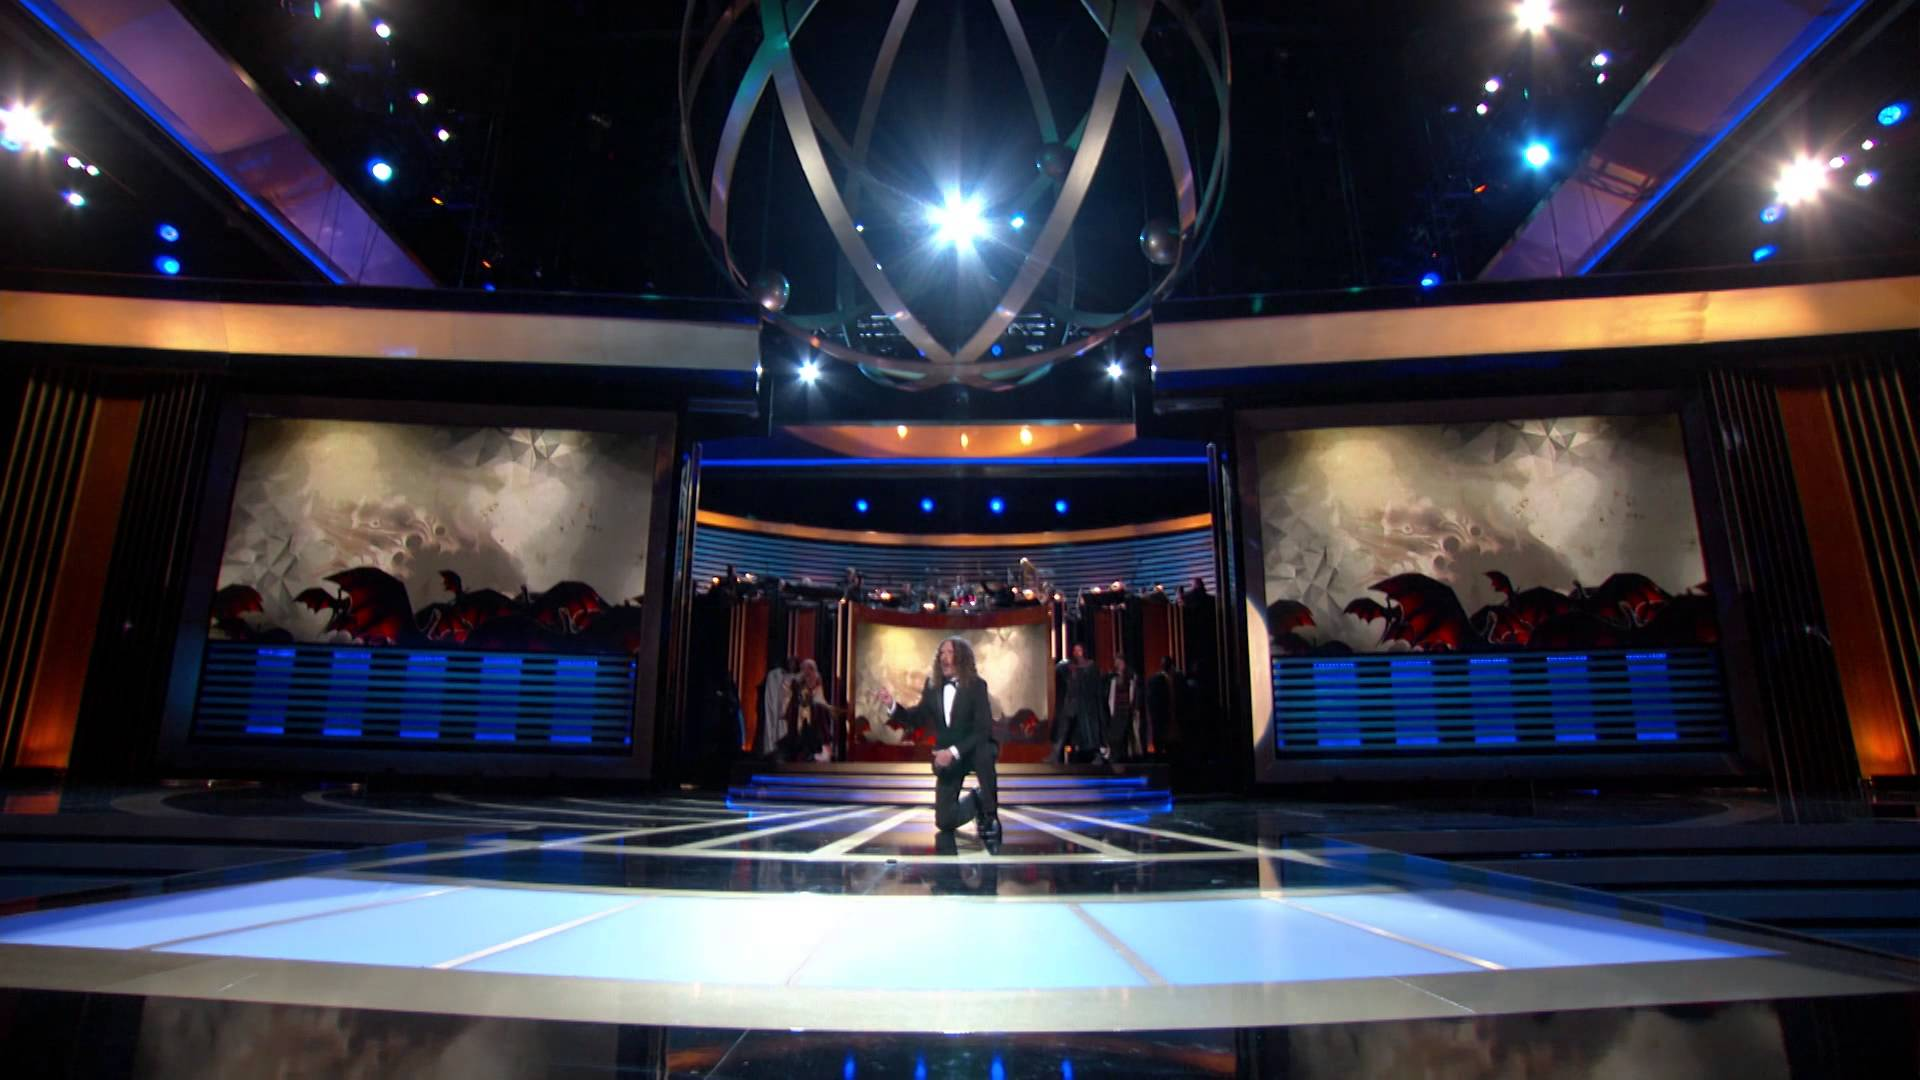 'Weird Al' Yankovic Performs a Medley of Television Show Theme Songs With Added Lyrics at the 2014 Emmy Awards